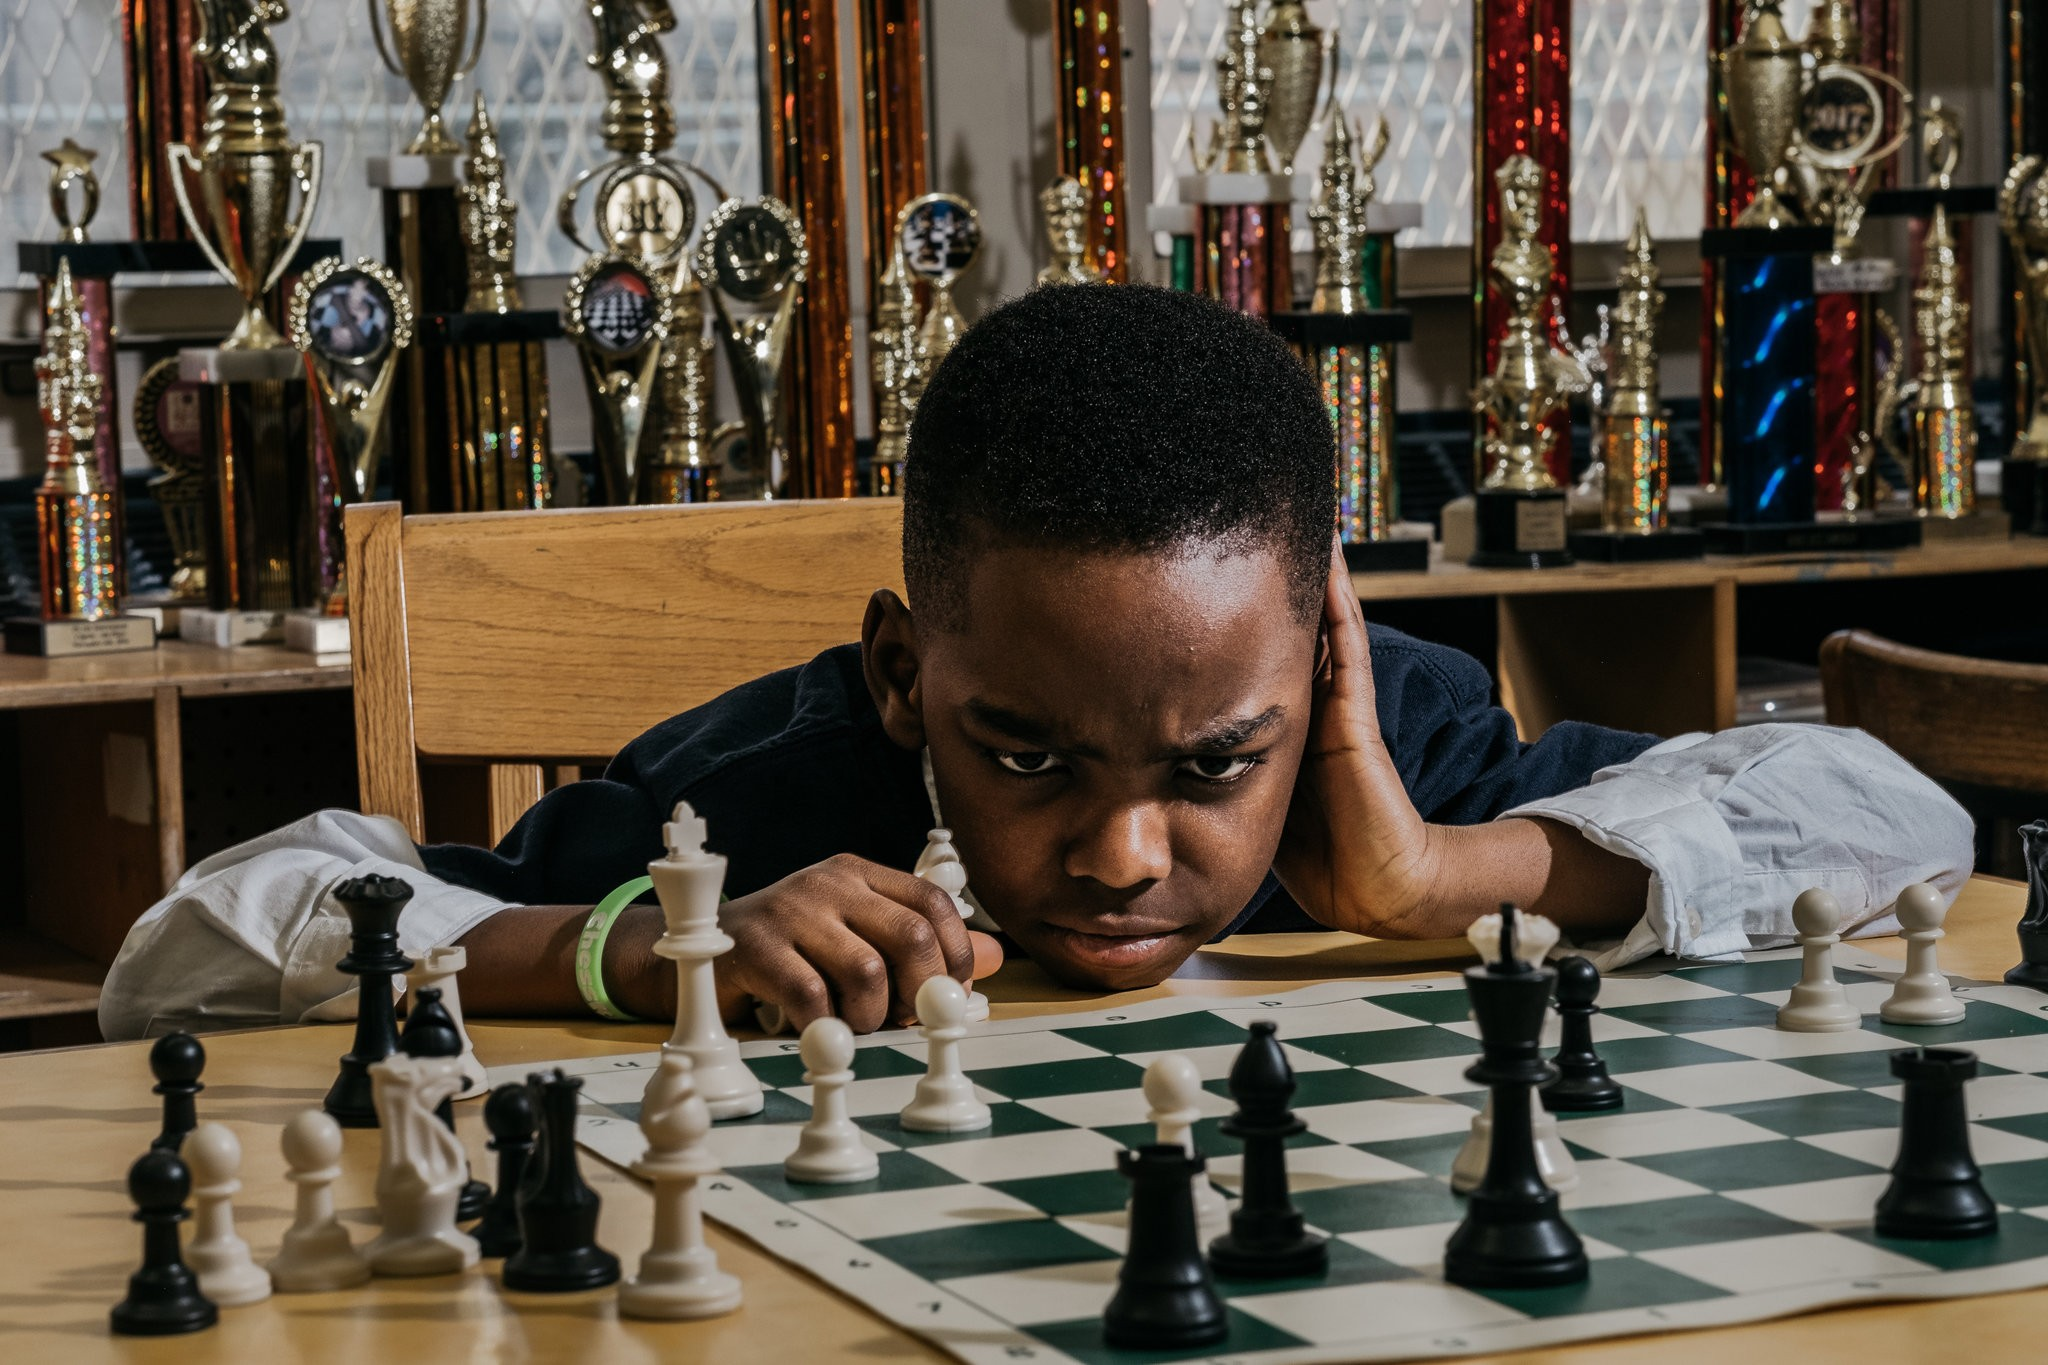 Tani Adewumi chin on table looking at chess position